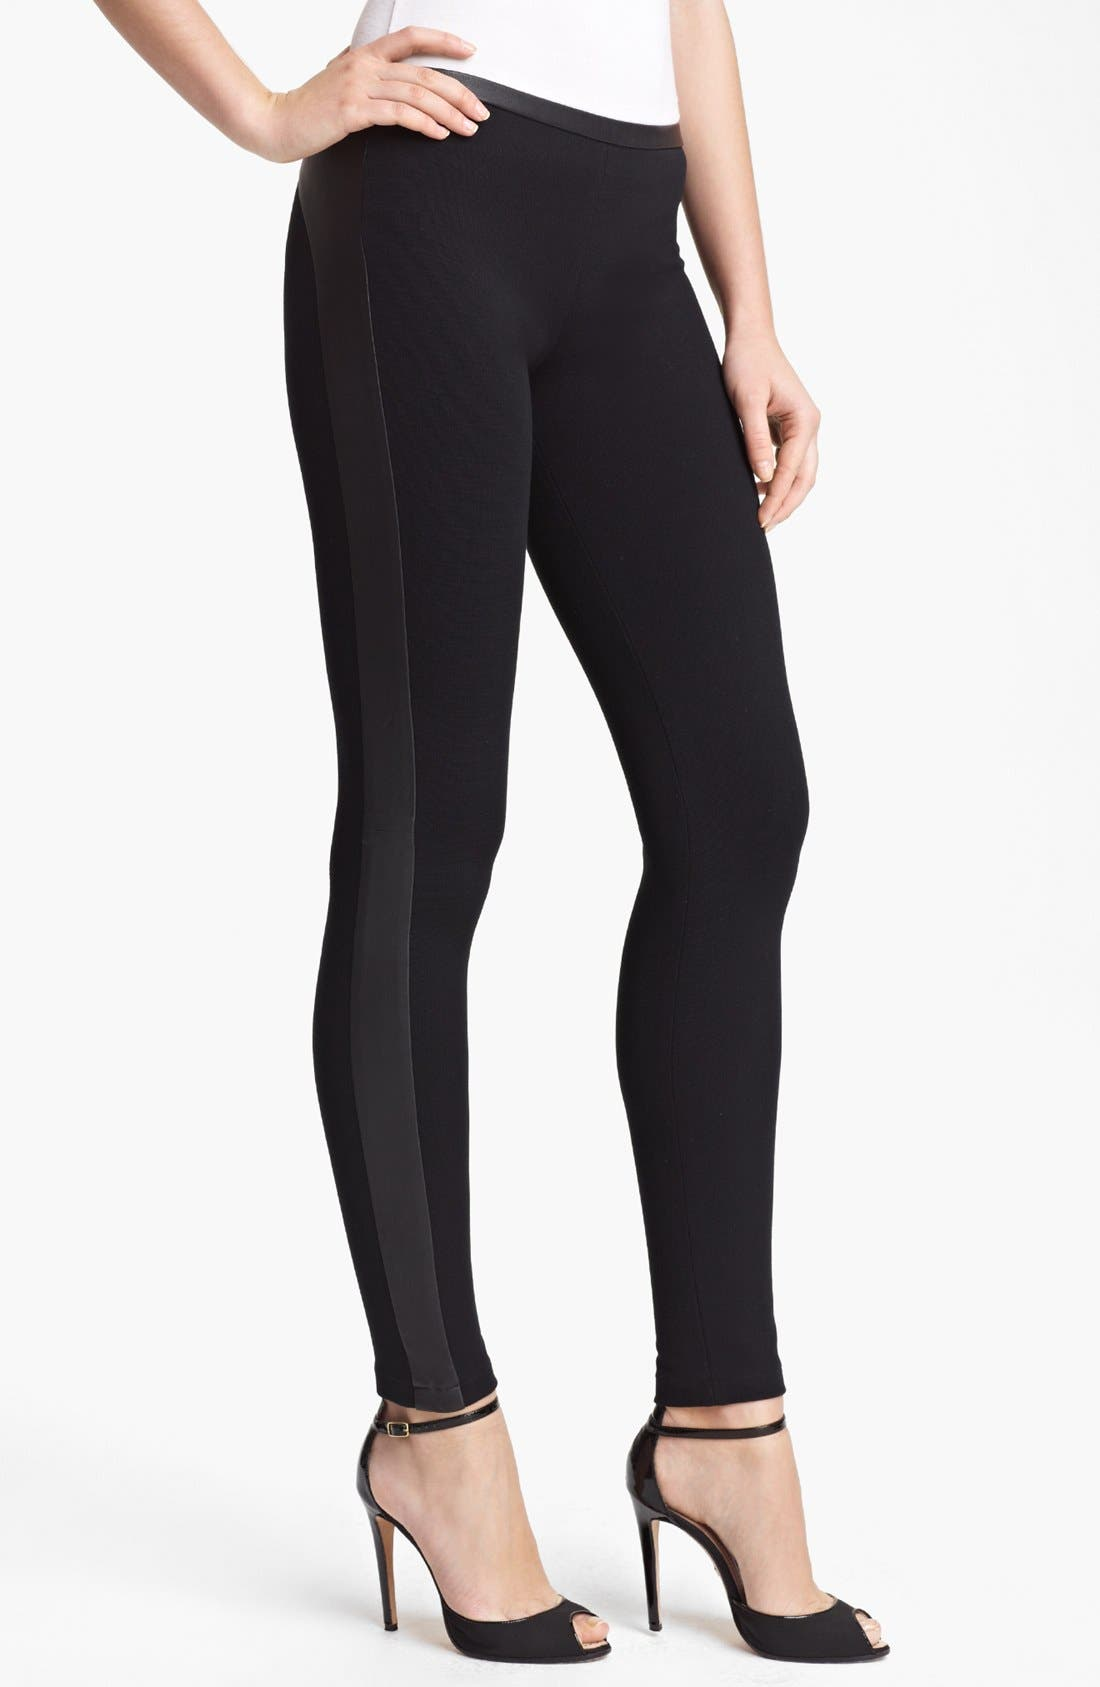 Alternate Image 1 Selected - Emilio Pucci Leather Trim Punto Milano Leggings